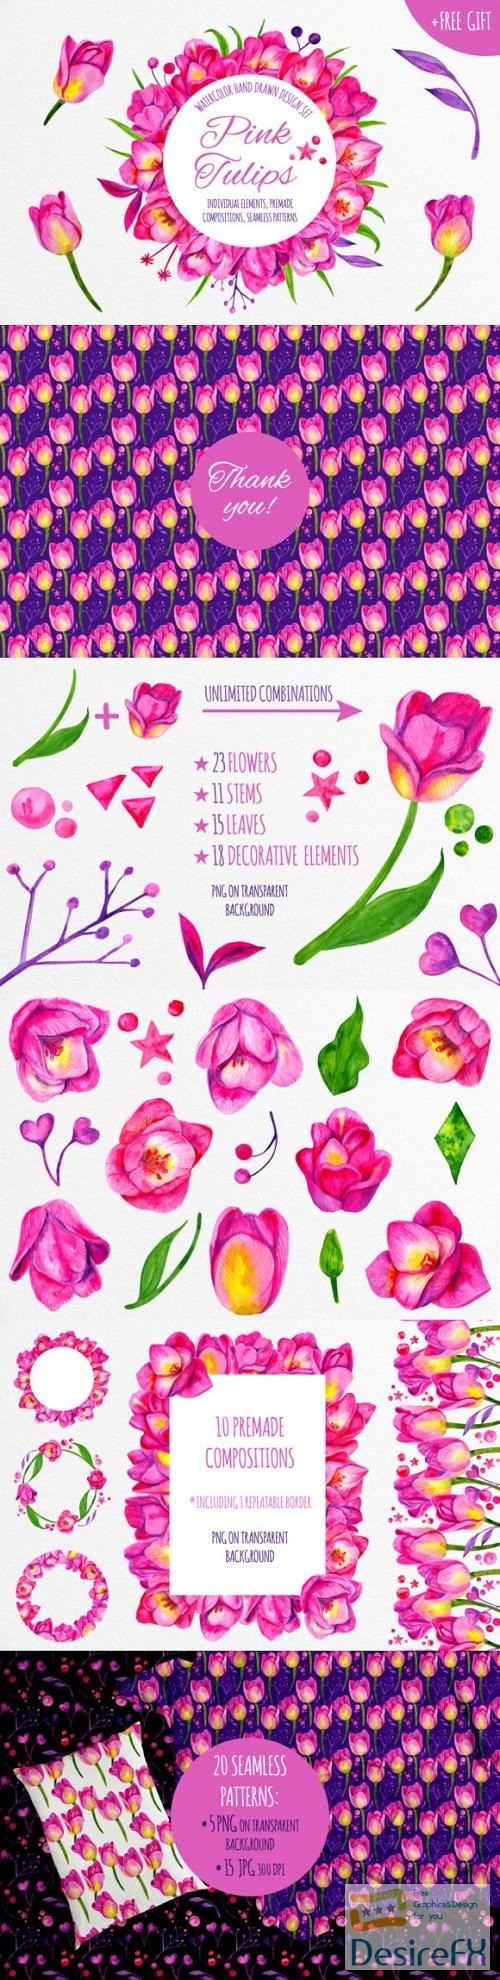 stock-images - Pink Tulips